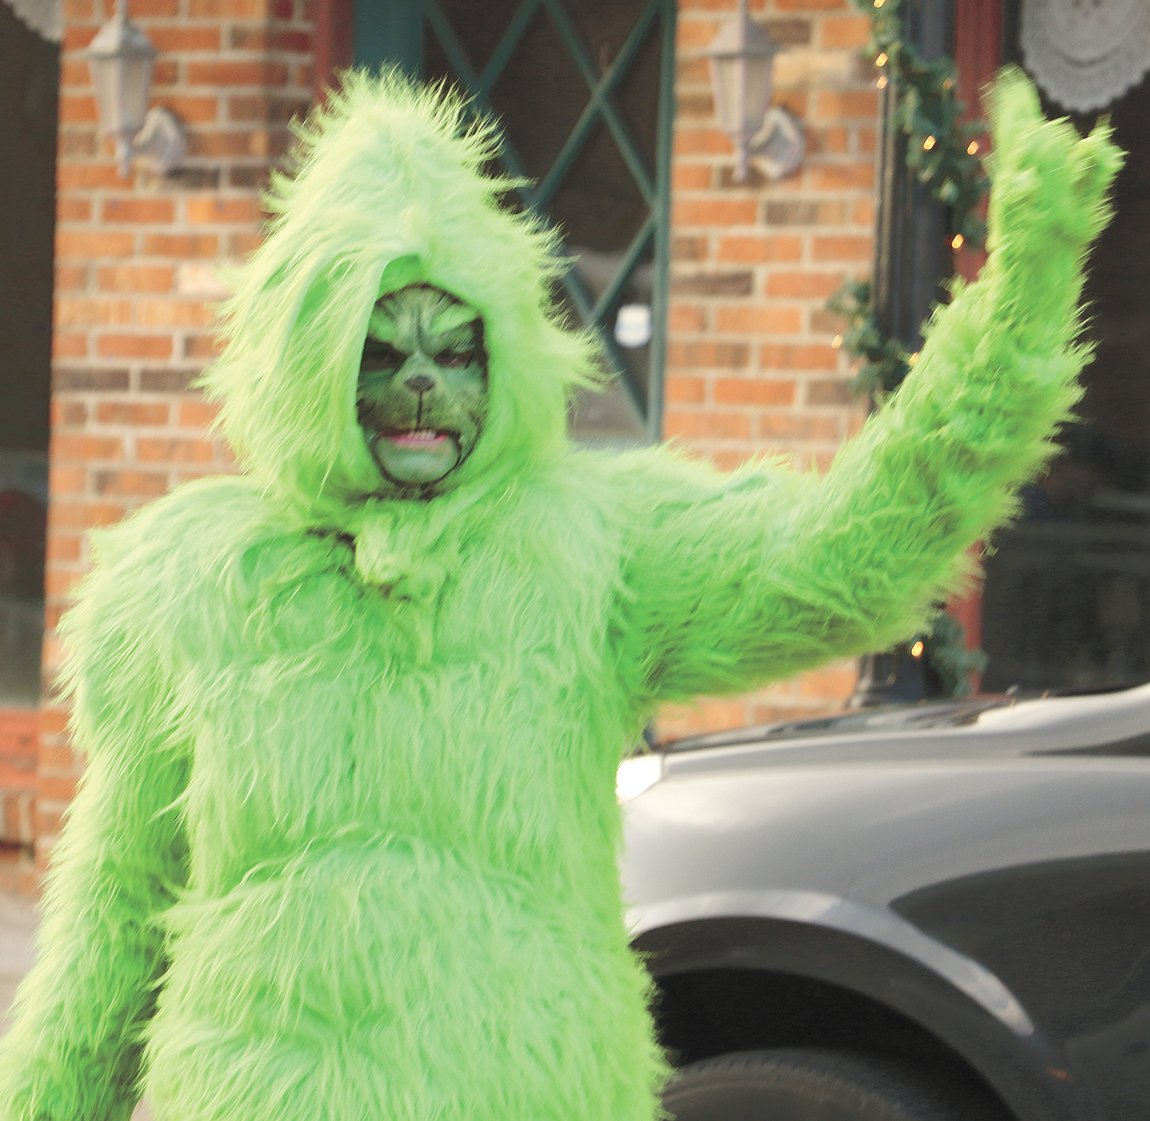 The Grinch – Brenda Lowery won second in the miscellaneous division.